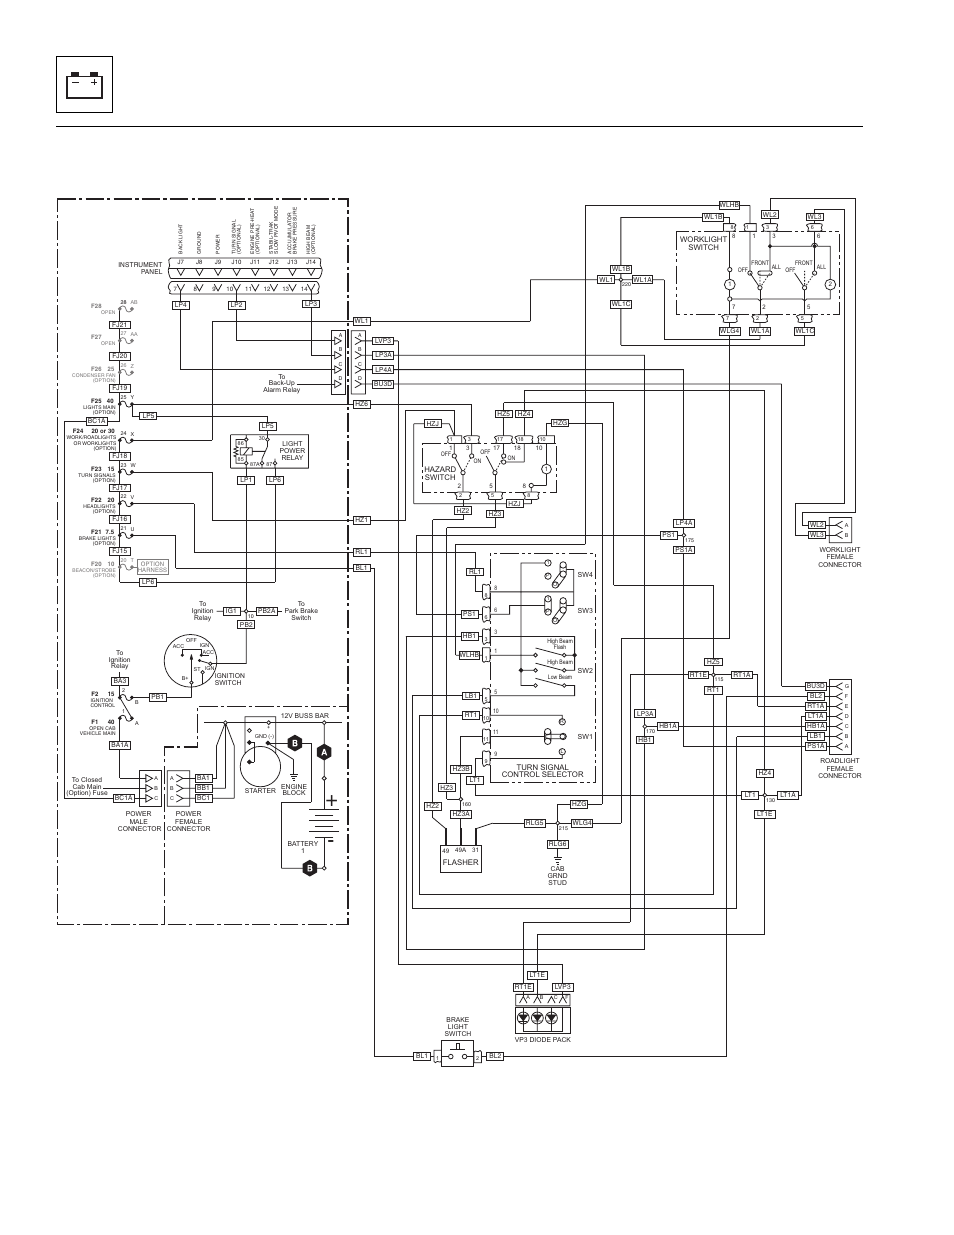 electrical wiring diagram lull